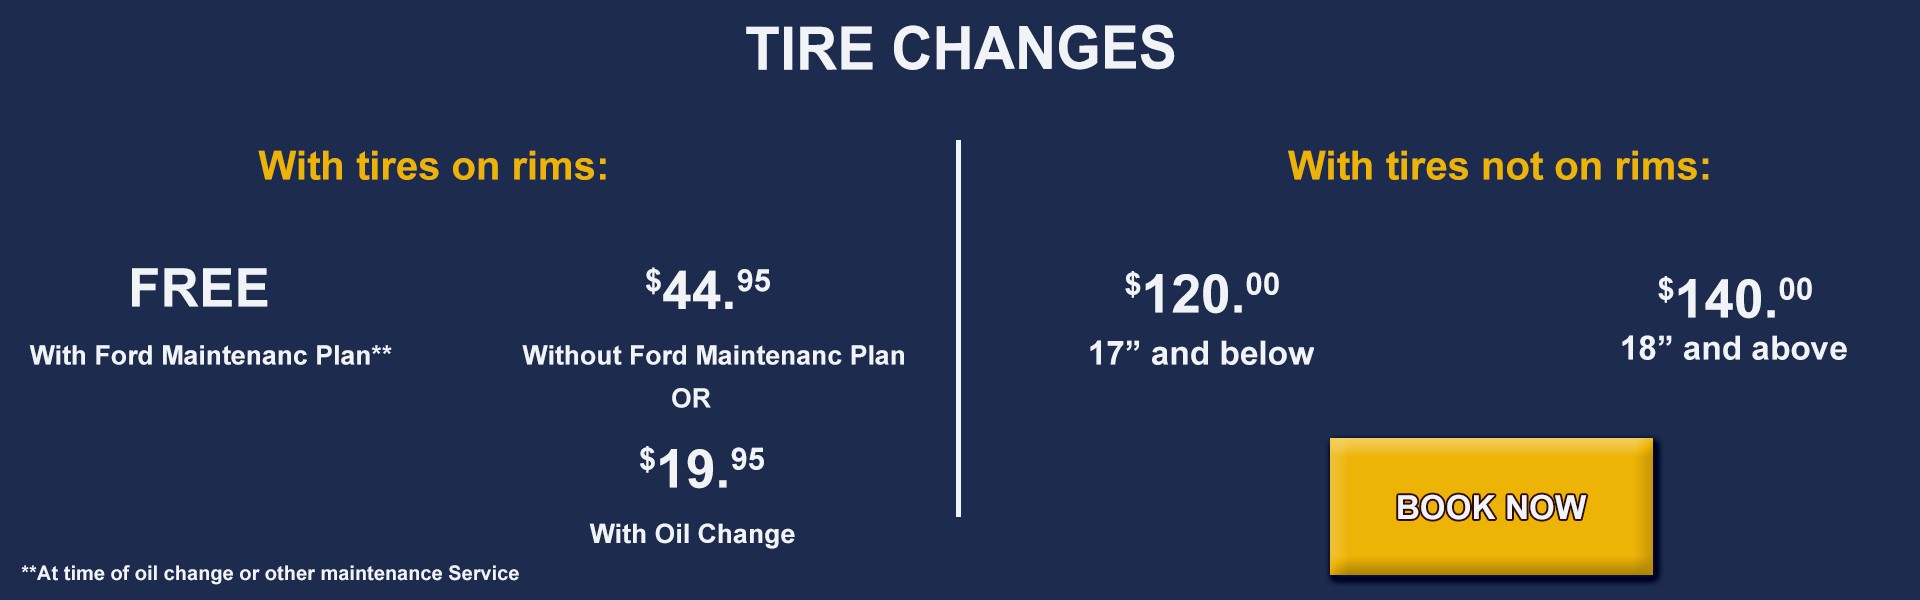 Book your Tire Change Now